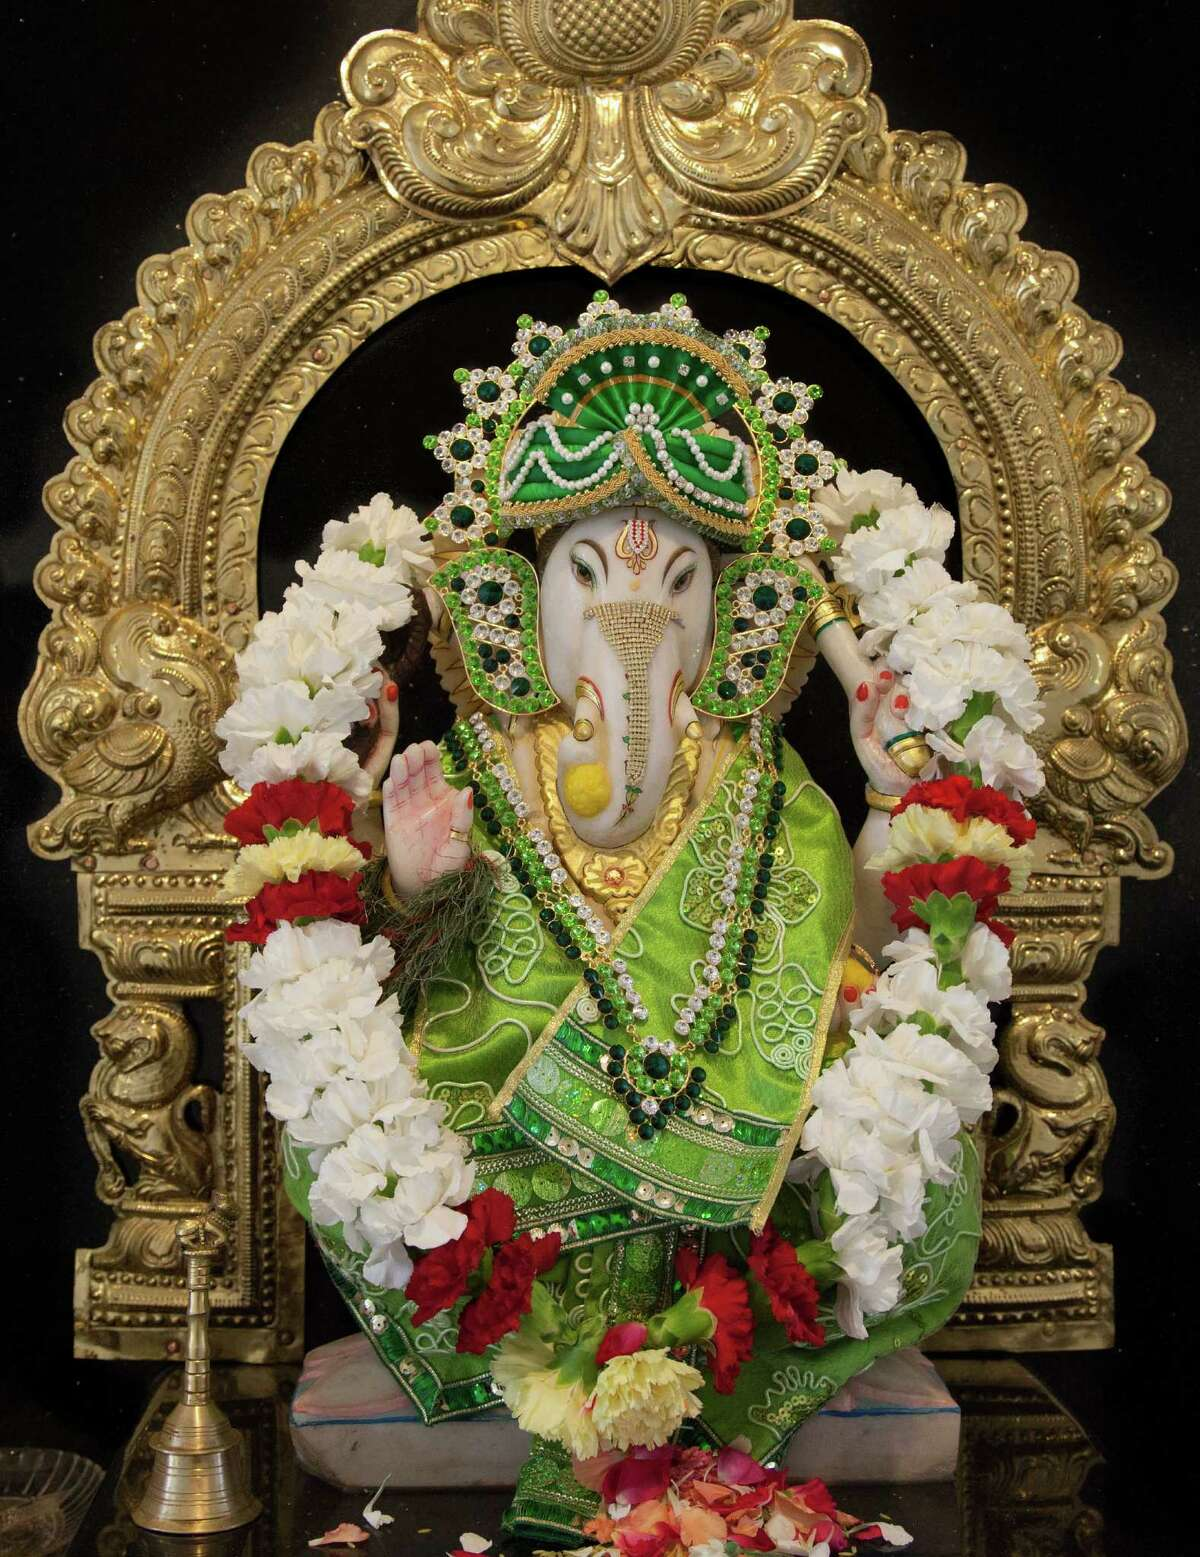 PHOTOS: What you need to know about Ganesha LordGanesha is the god of prosperity and wisdom.>>>See more for facts on the Hindu deity...